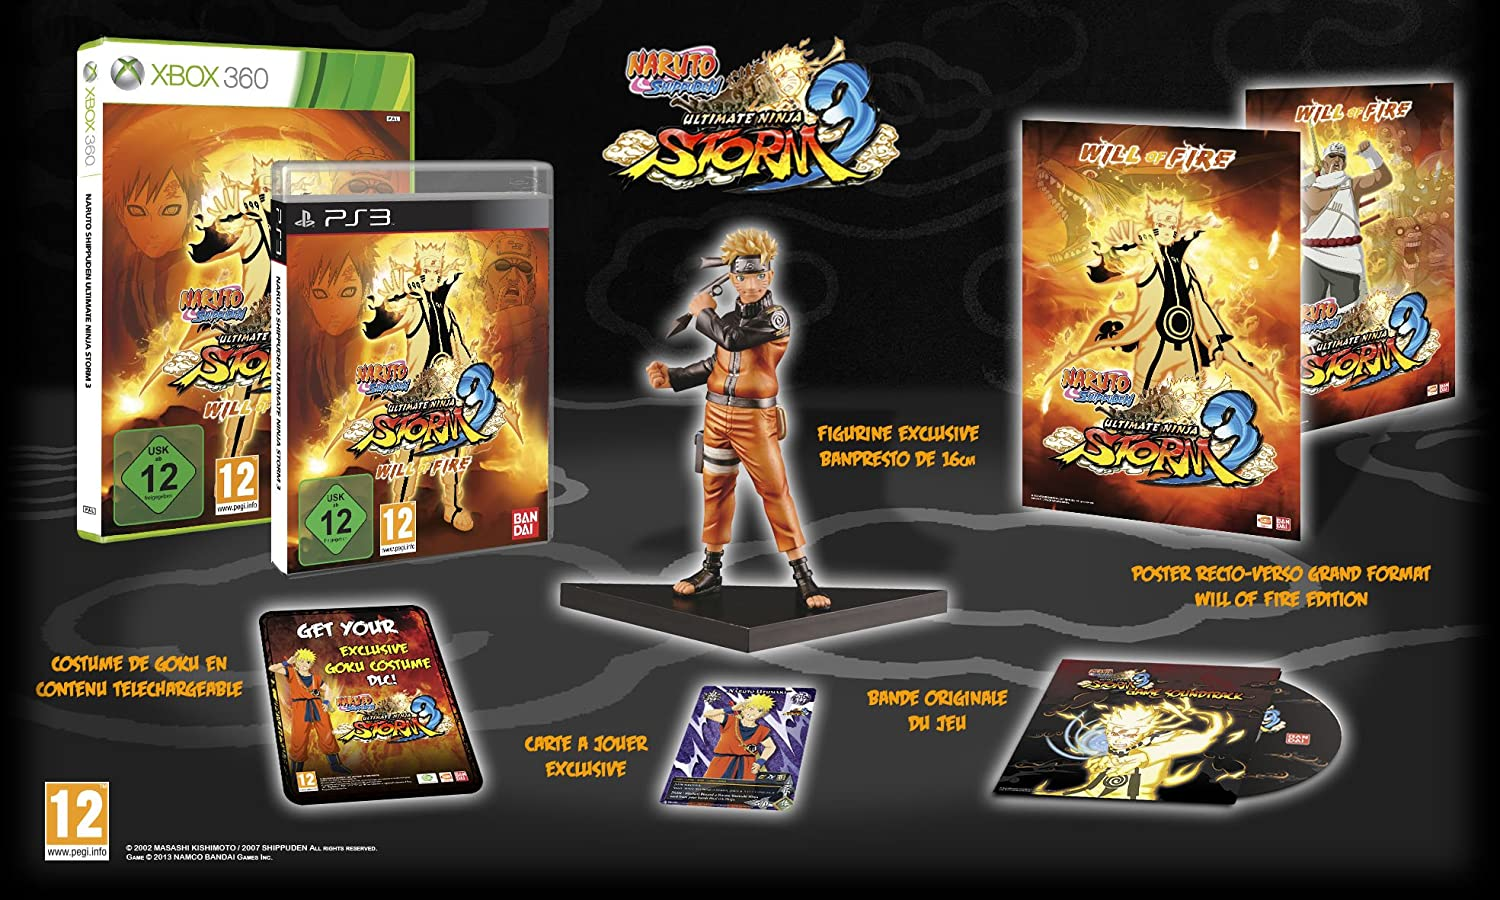 Naruto Shippuden: Ultimate Ninja Storm 3 Will Of Fire ...